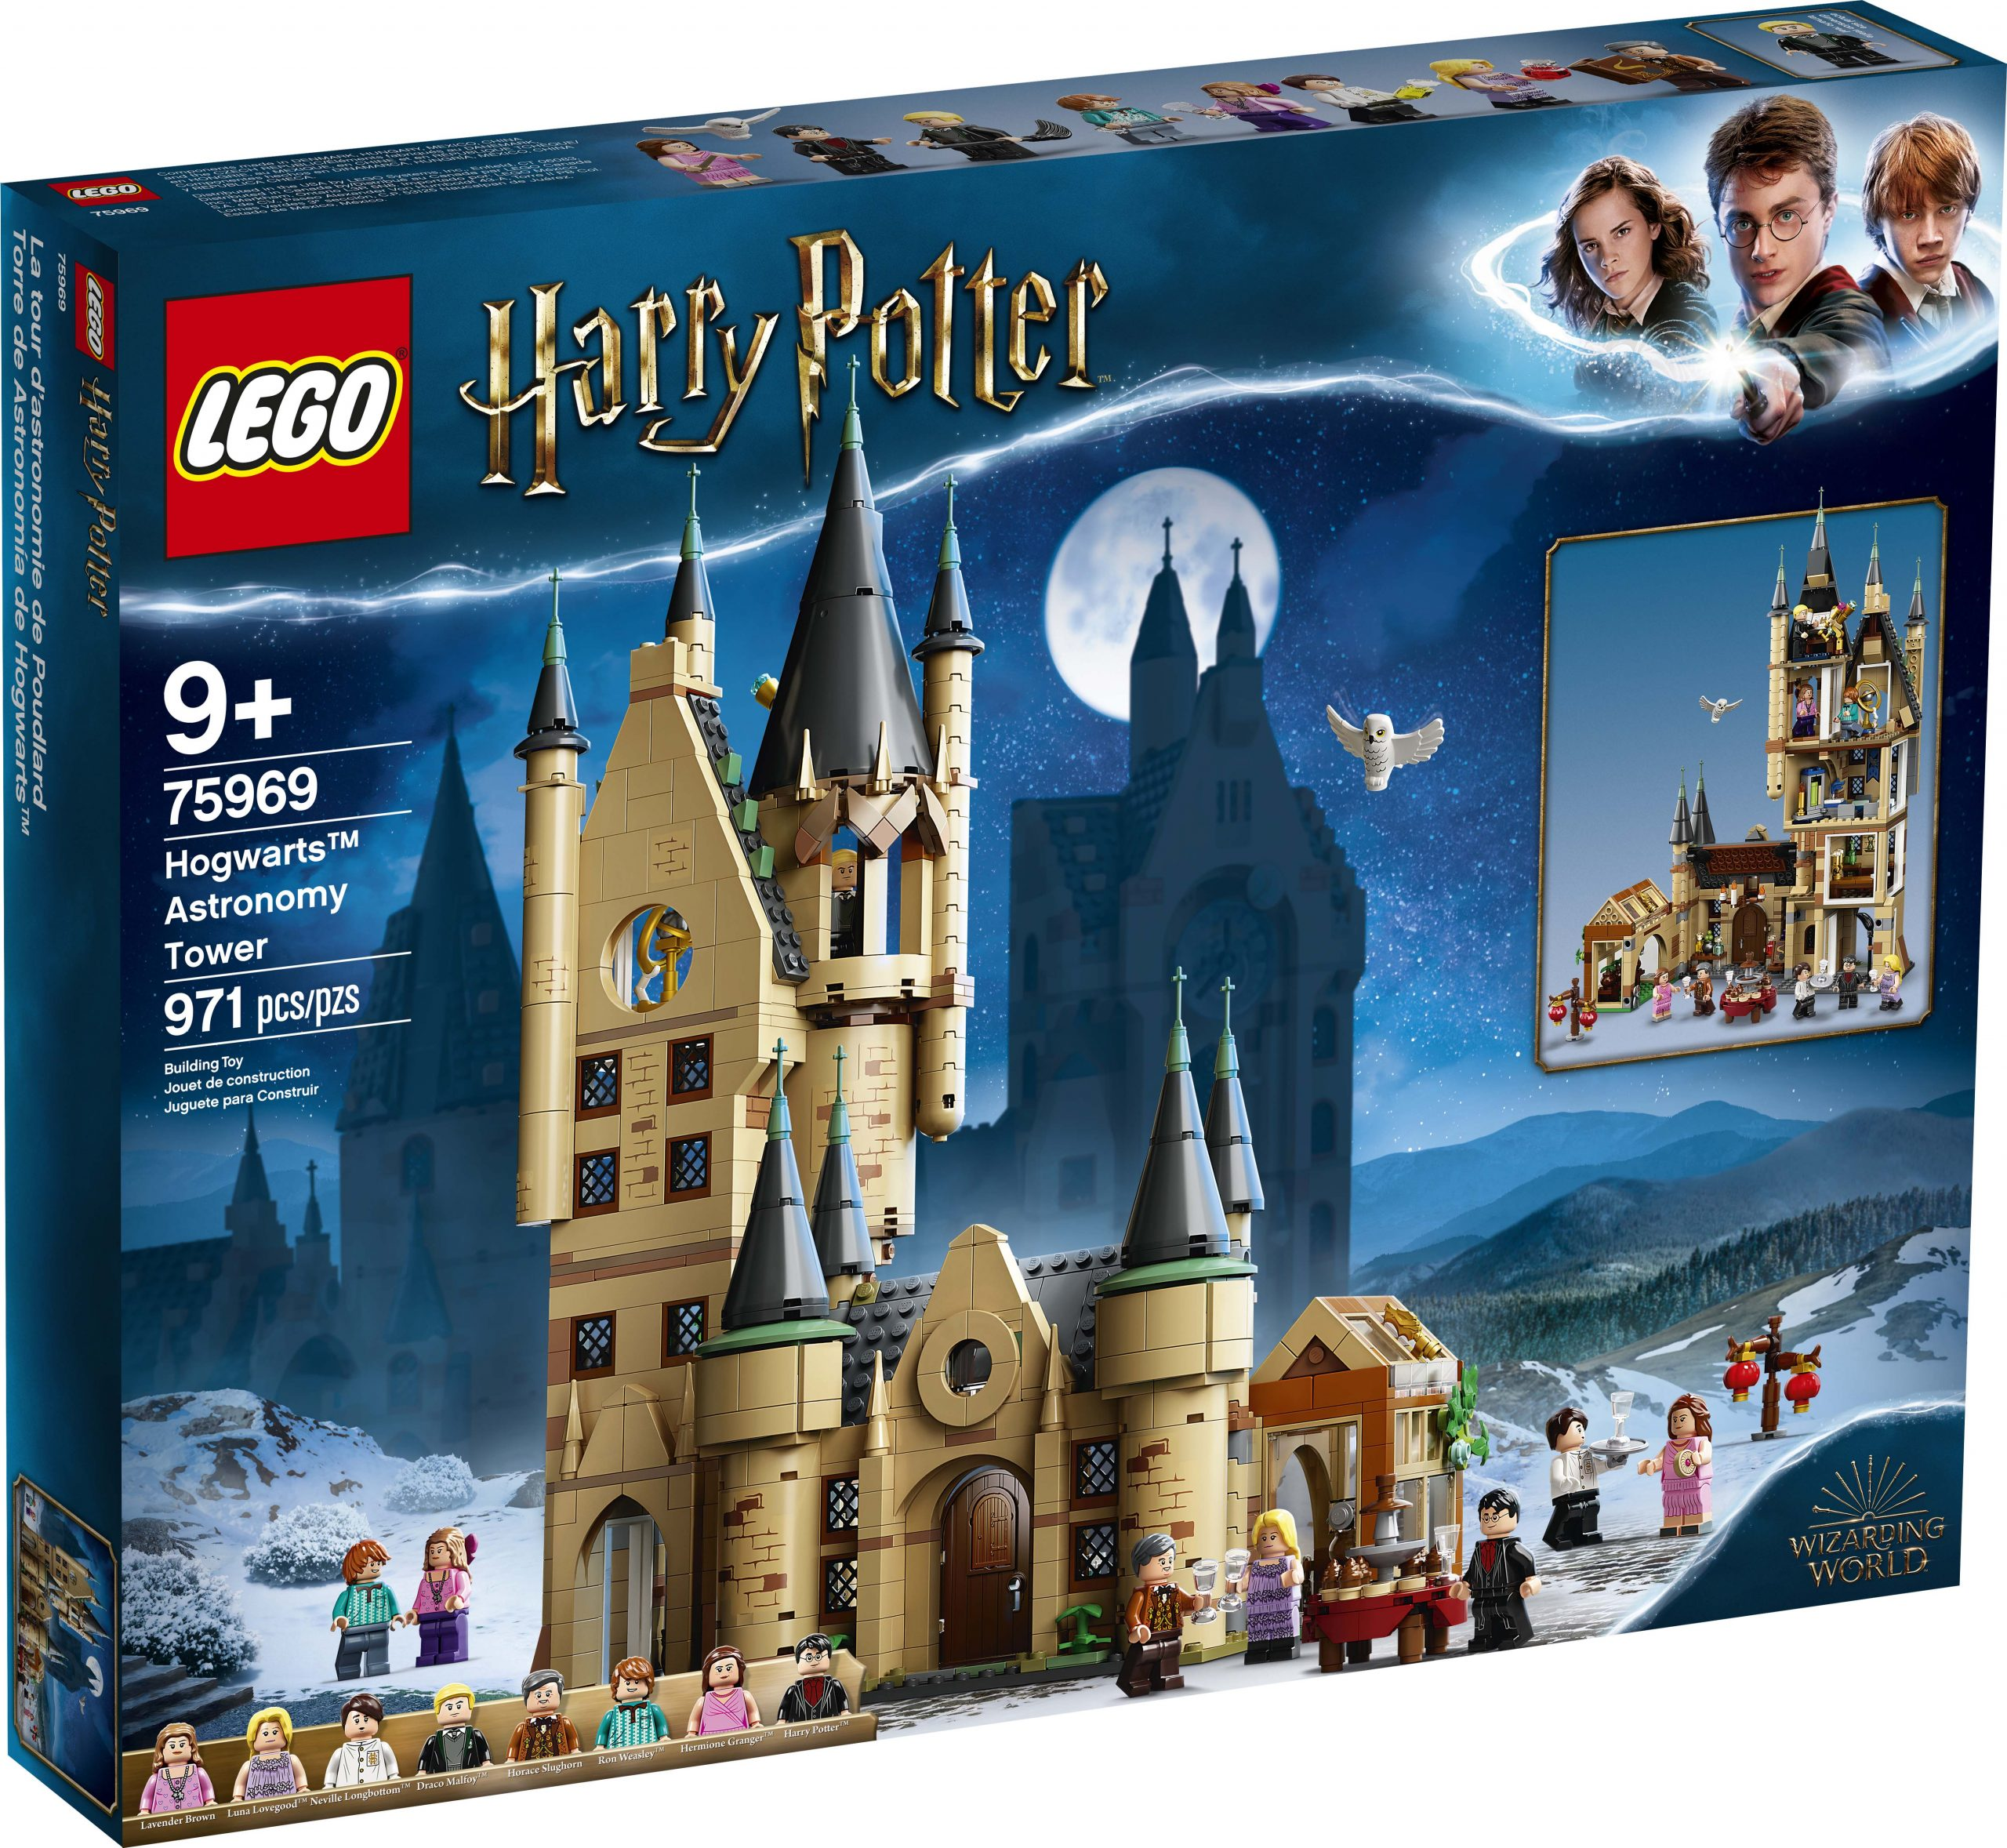 LEGO-Harry-Potter-Hogwarts-Astronomy-Tower-75969